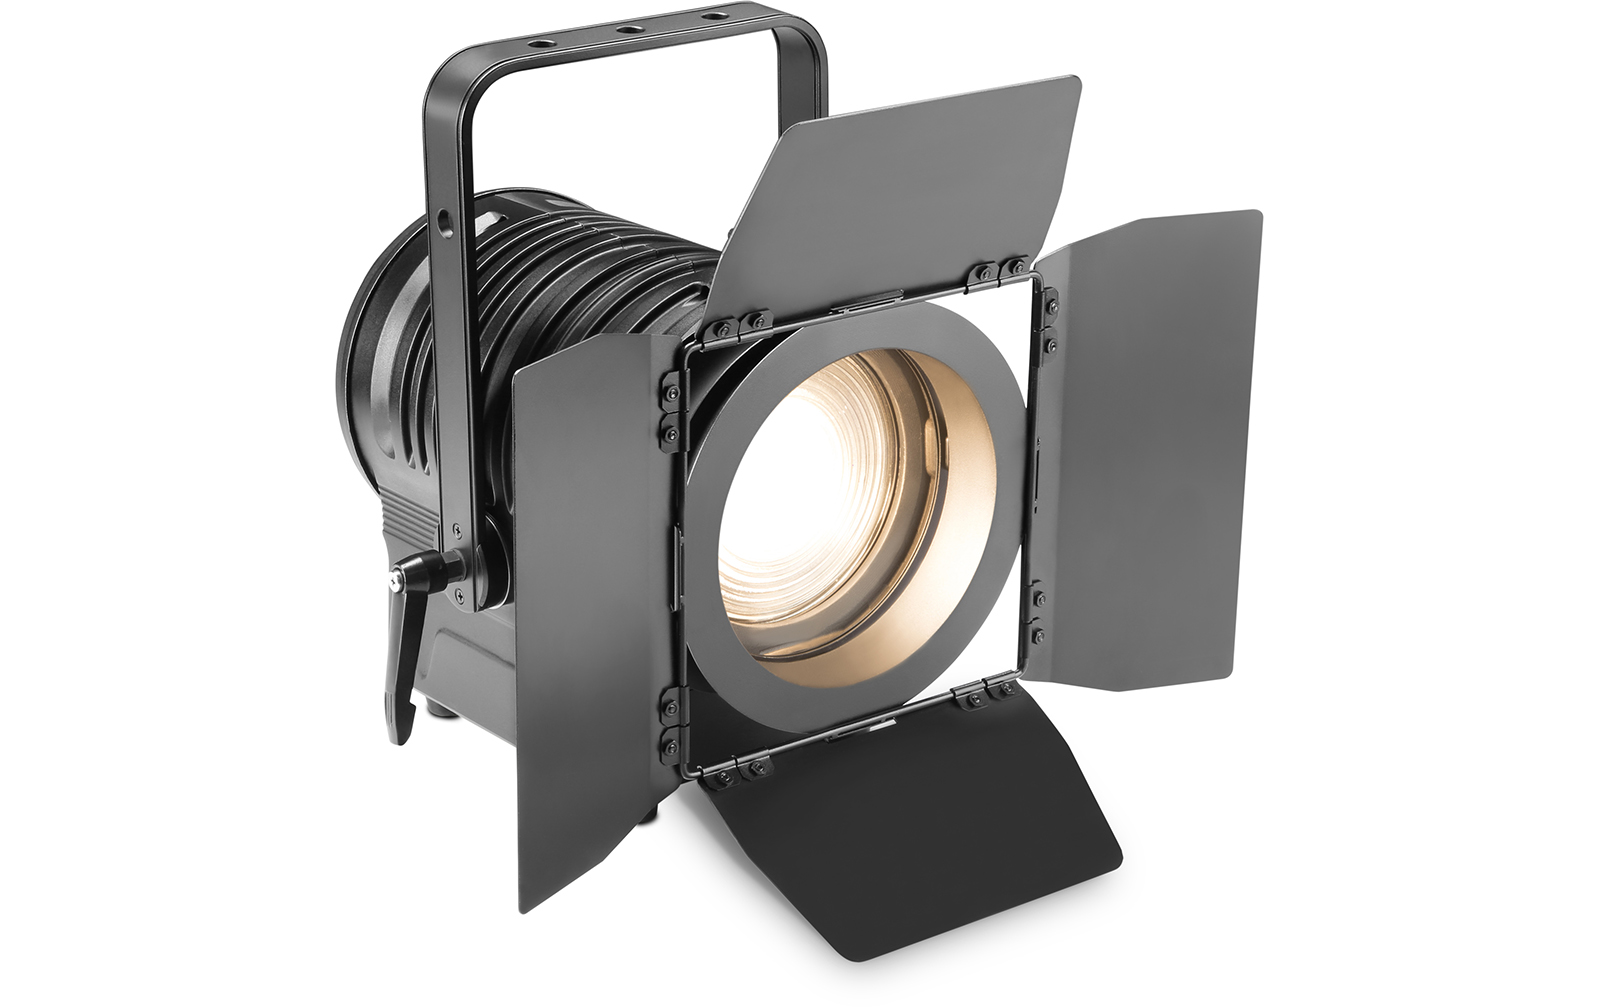 cameo-ts-100-ww-theater-spot-mit-fresnel-linse-und-warmweiayer-100-w-led-in-schwarzem-geha-use